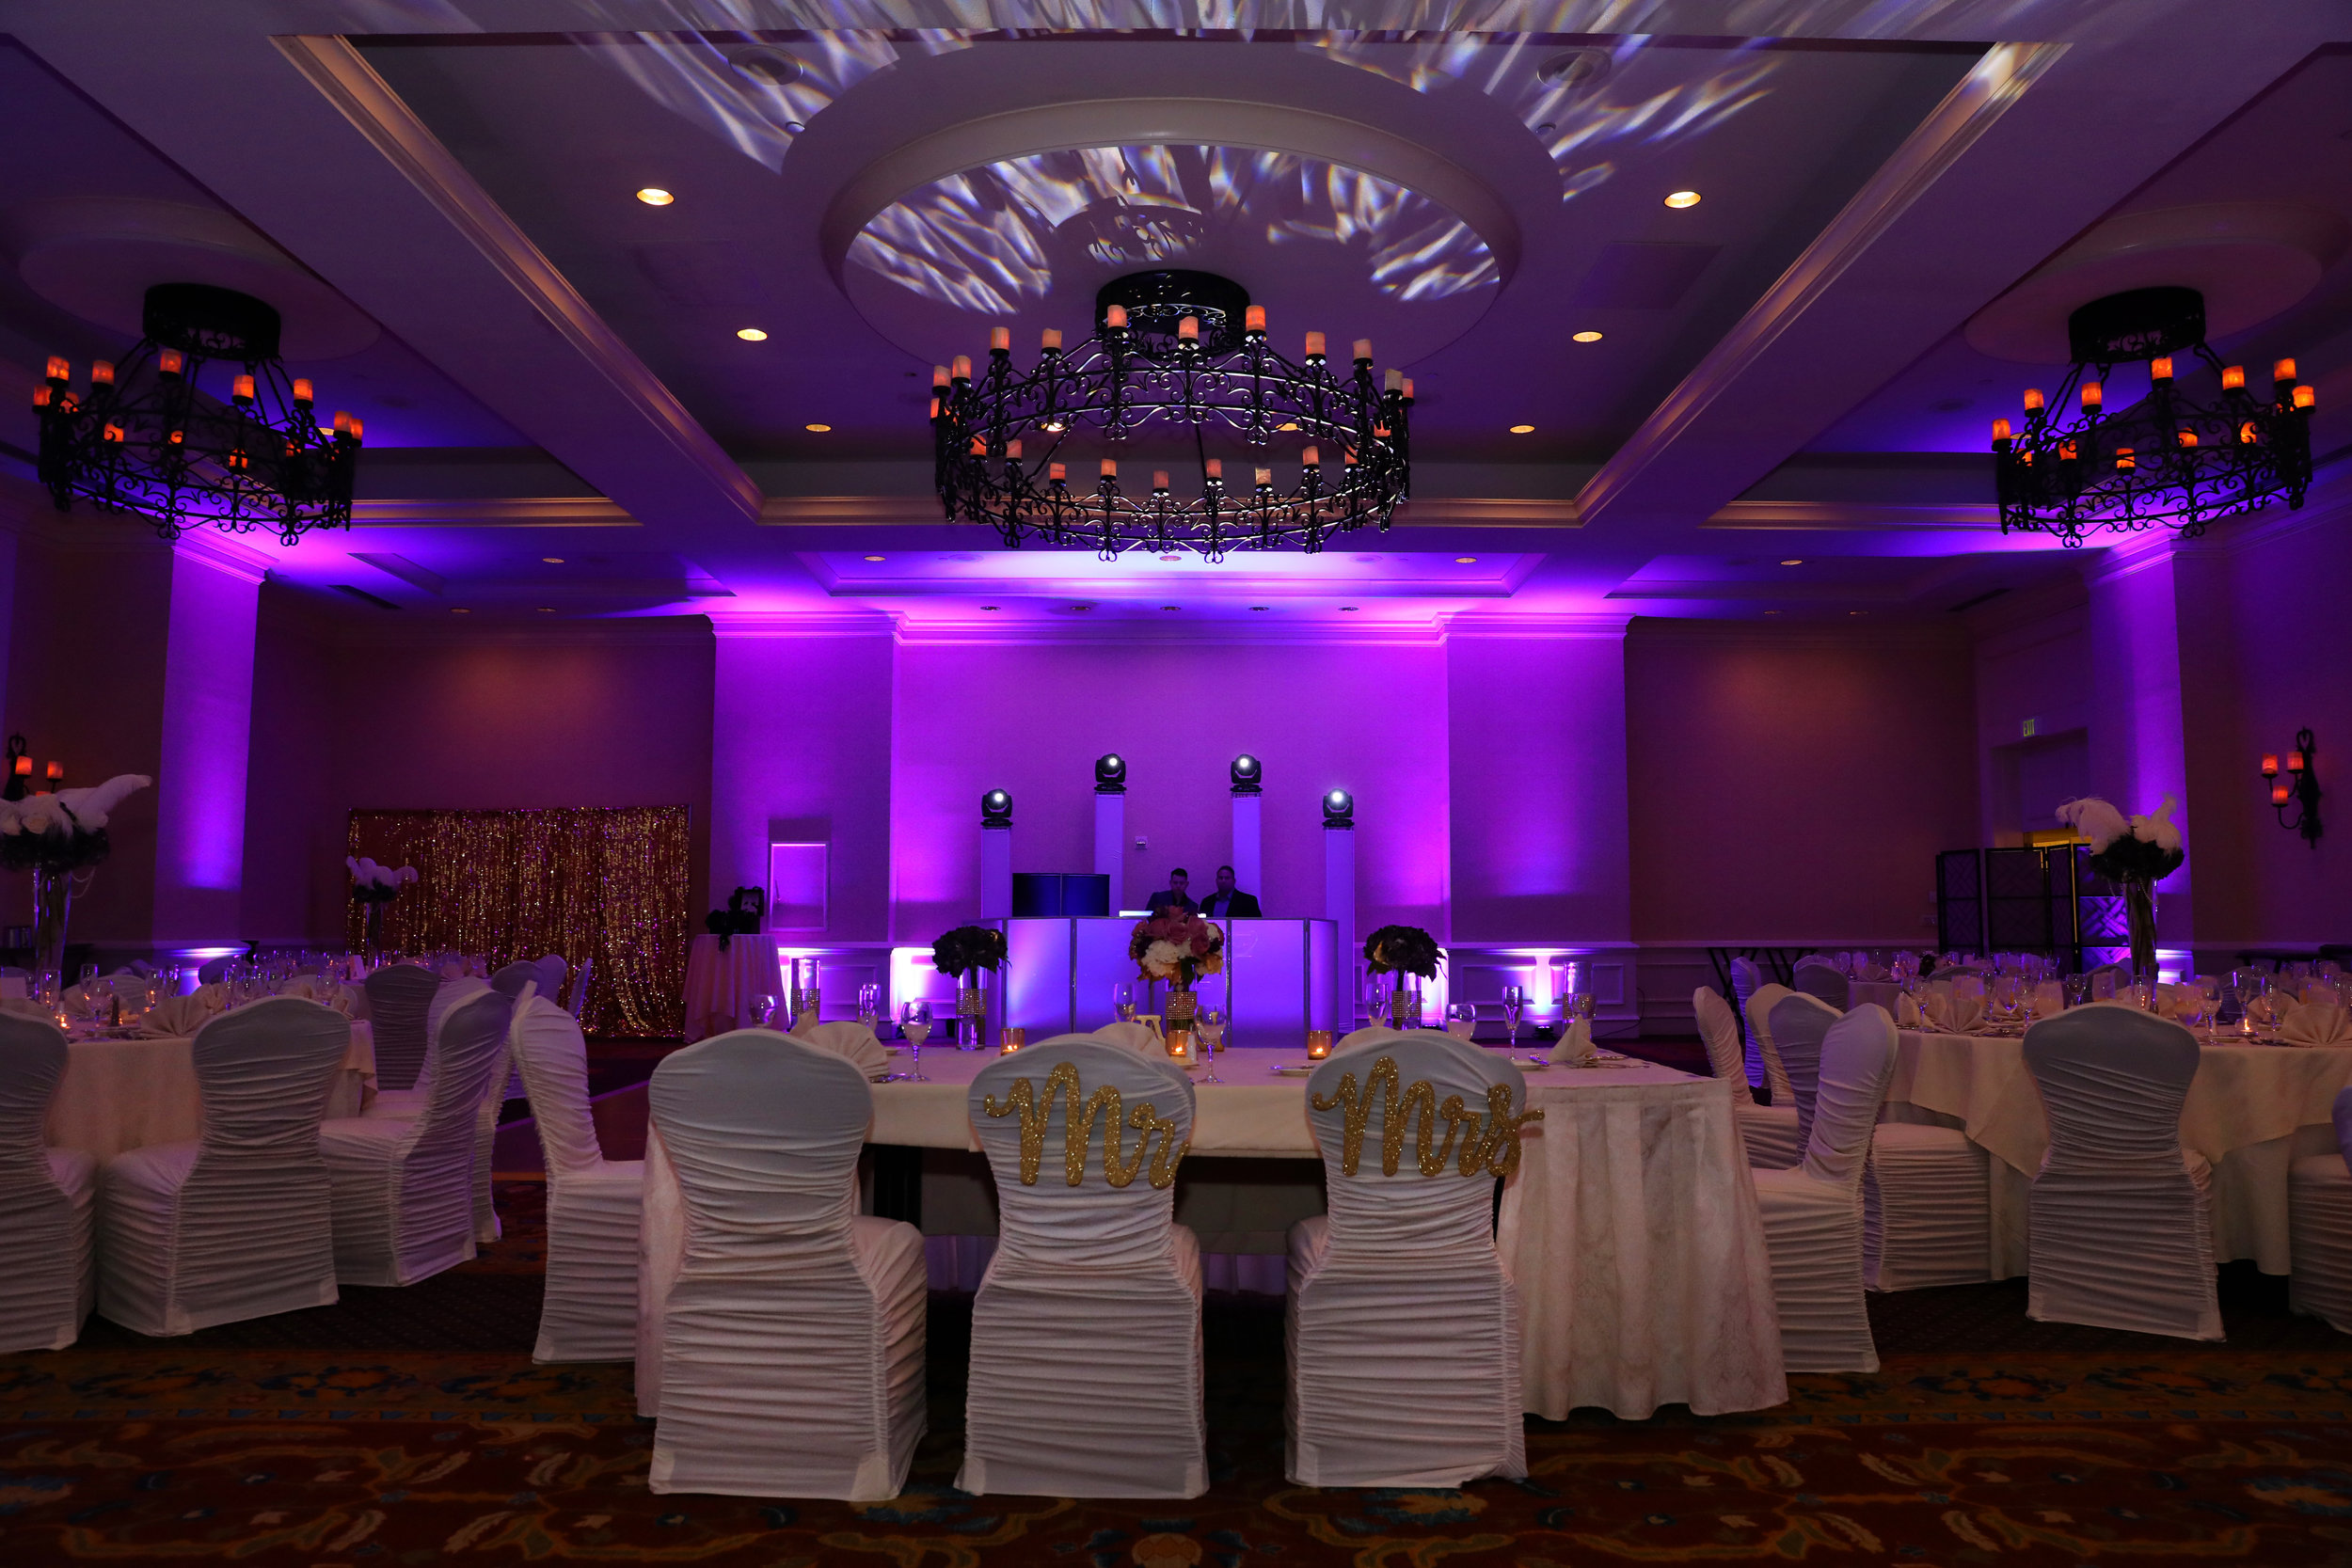 LIGHTING DESIGN - Smart lighting design can dramatically change the atmosphere of your event. From subtle accent lighting to venue-transforming uplighting.